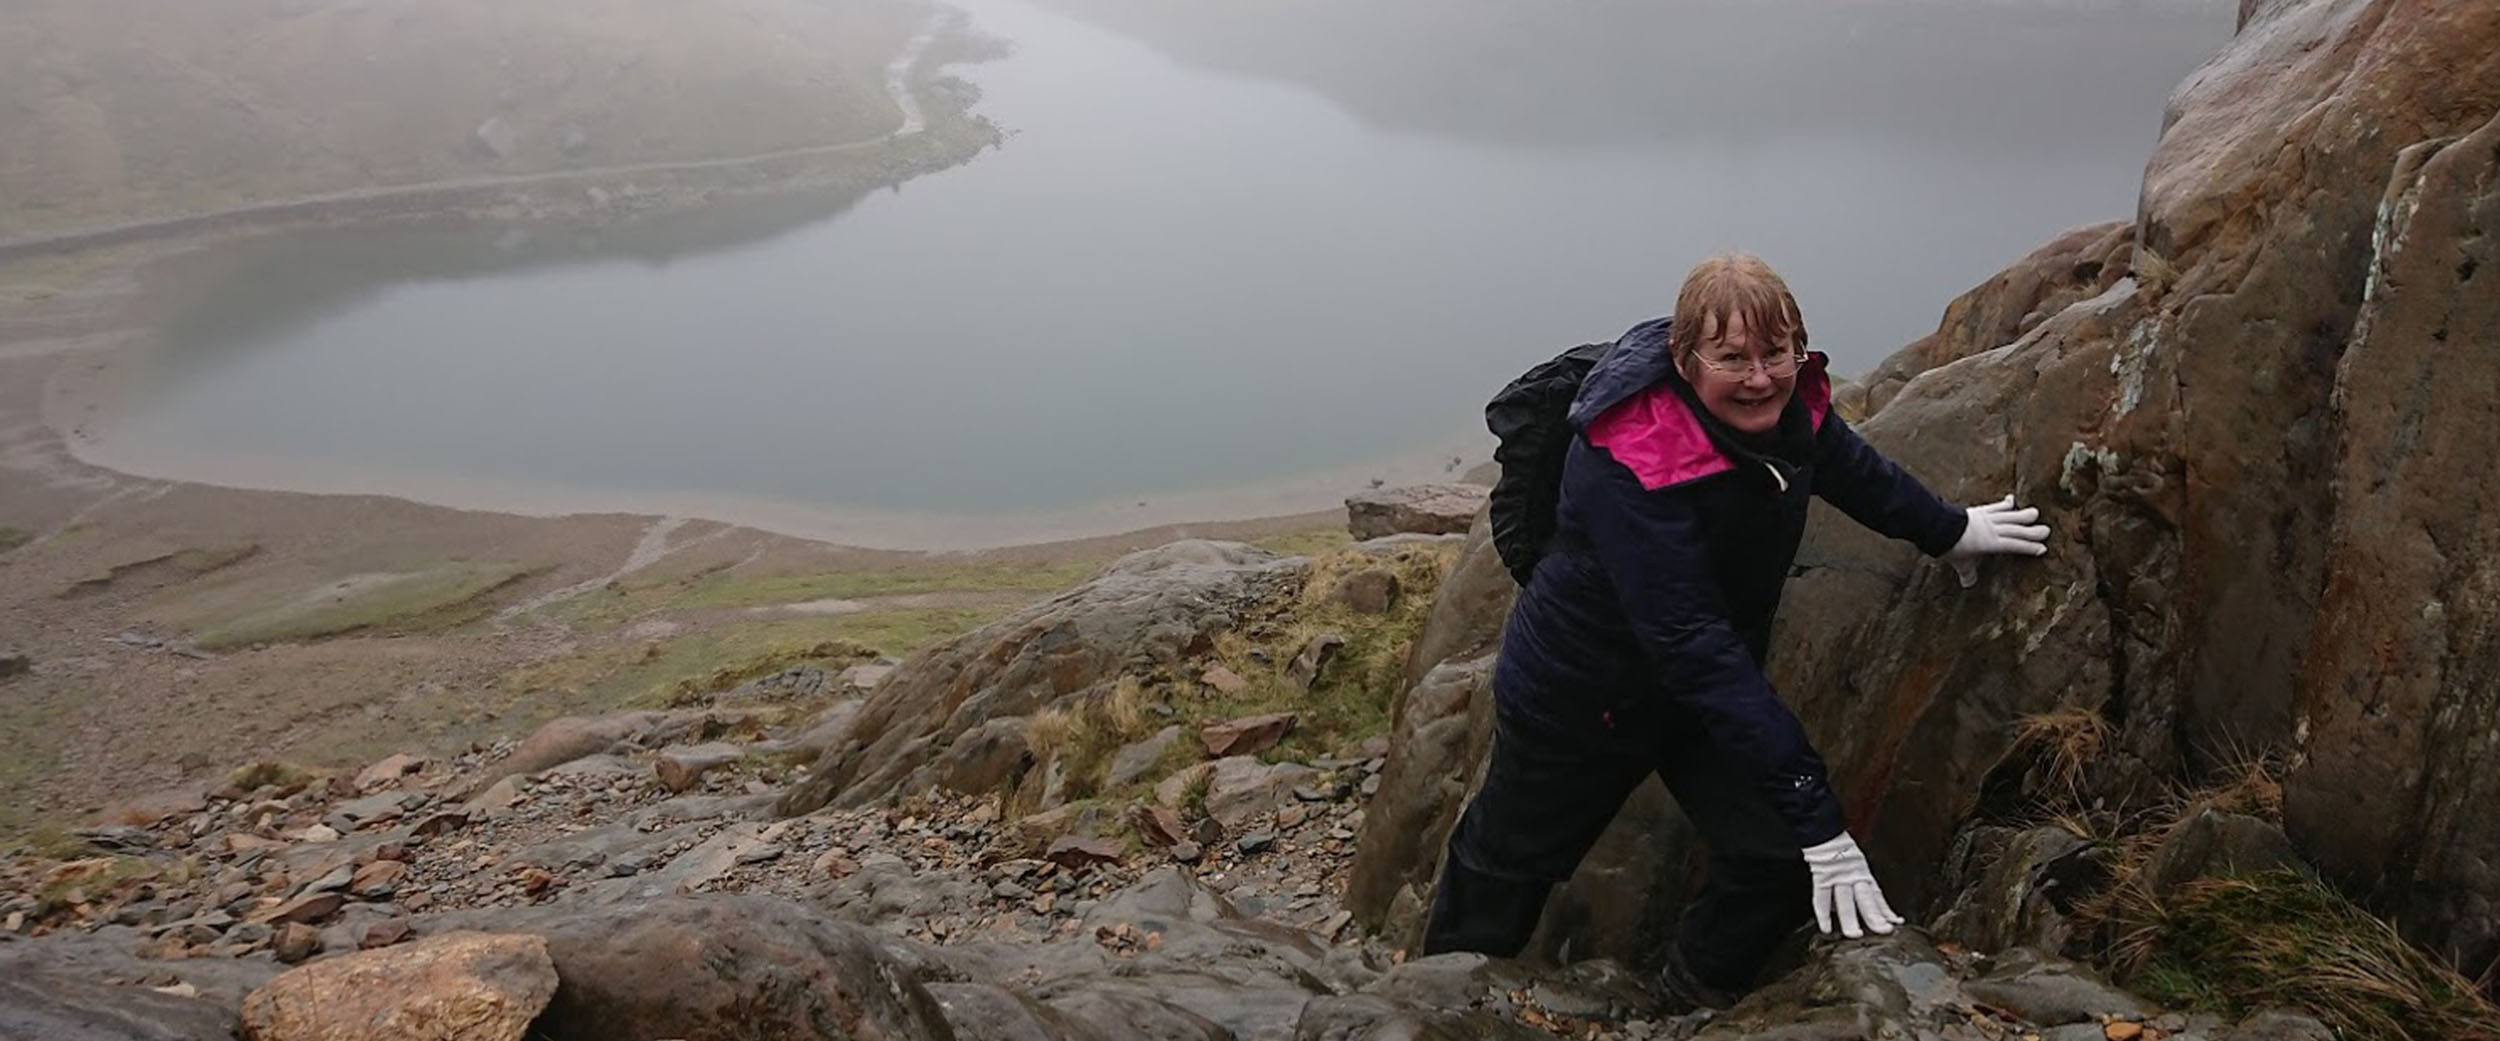 A lady making her way up Snowdon for the first time. Despite what looks like a damp day she is smiling